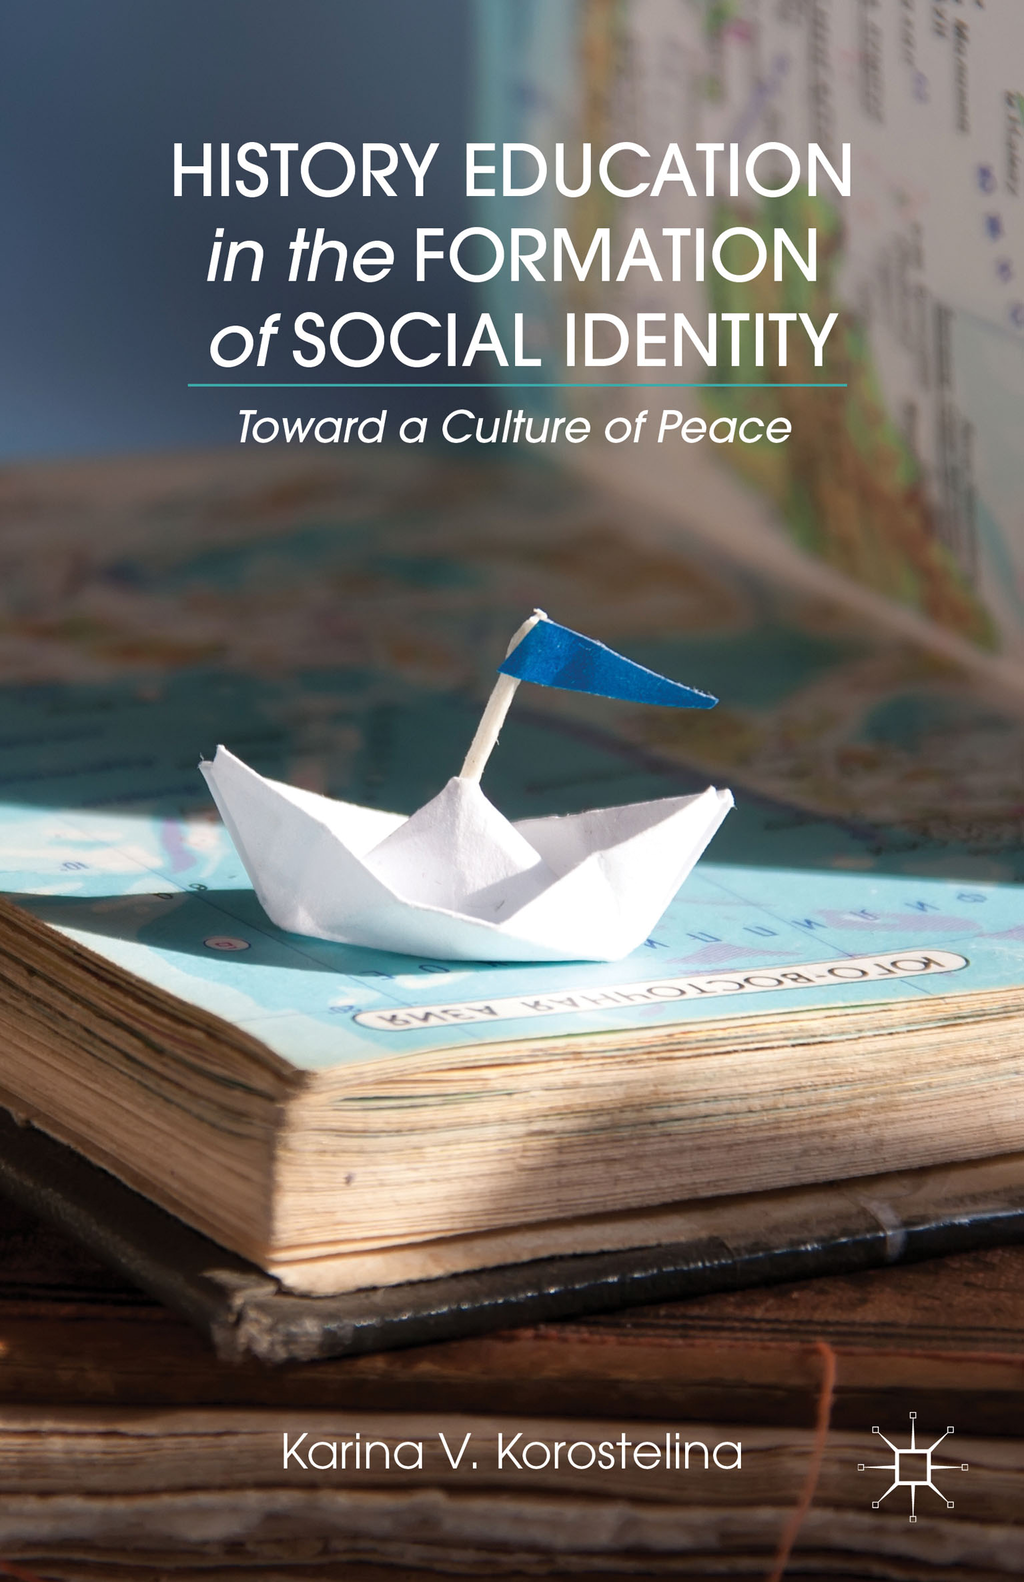 History Education in the Formation of Social Identity Toward a Culture of Peace